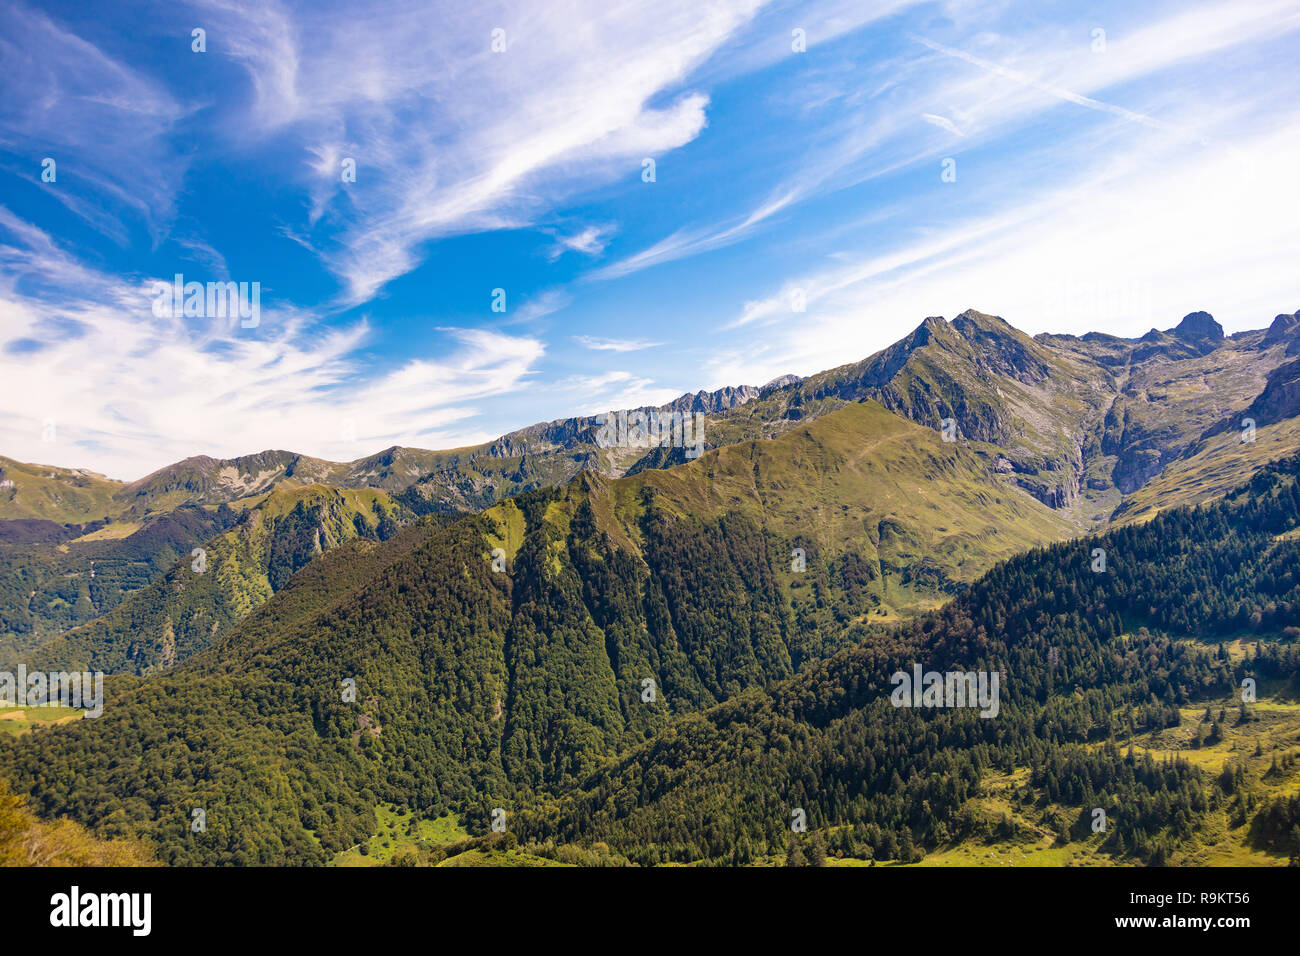 Landscape, view of the slopes and mountains around the ski resort Guzet-snow in summer. Couserans-Pyrenees, Ustou Valley, Ariège, Occitanie, France. Stock Photo